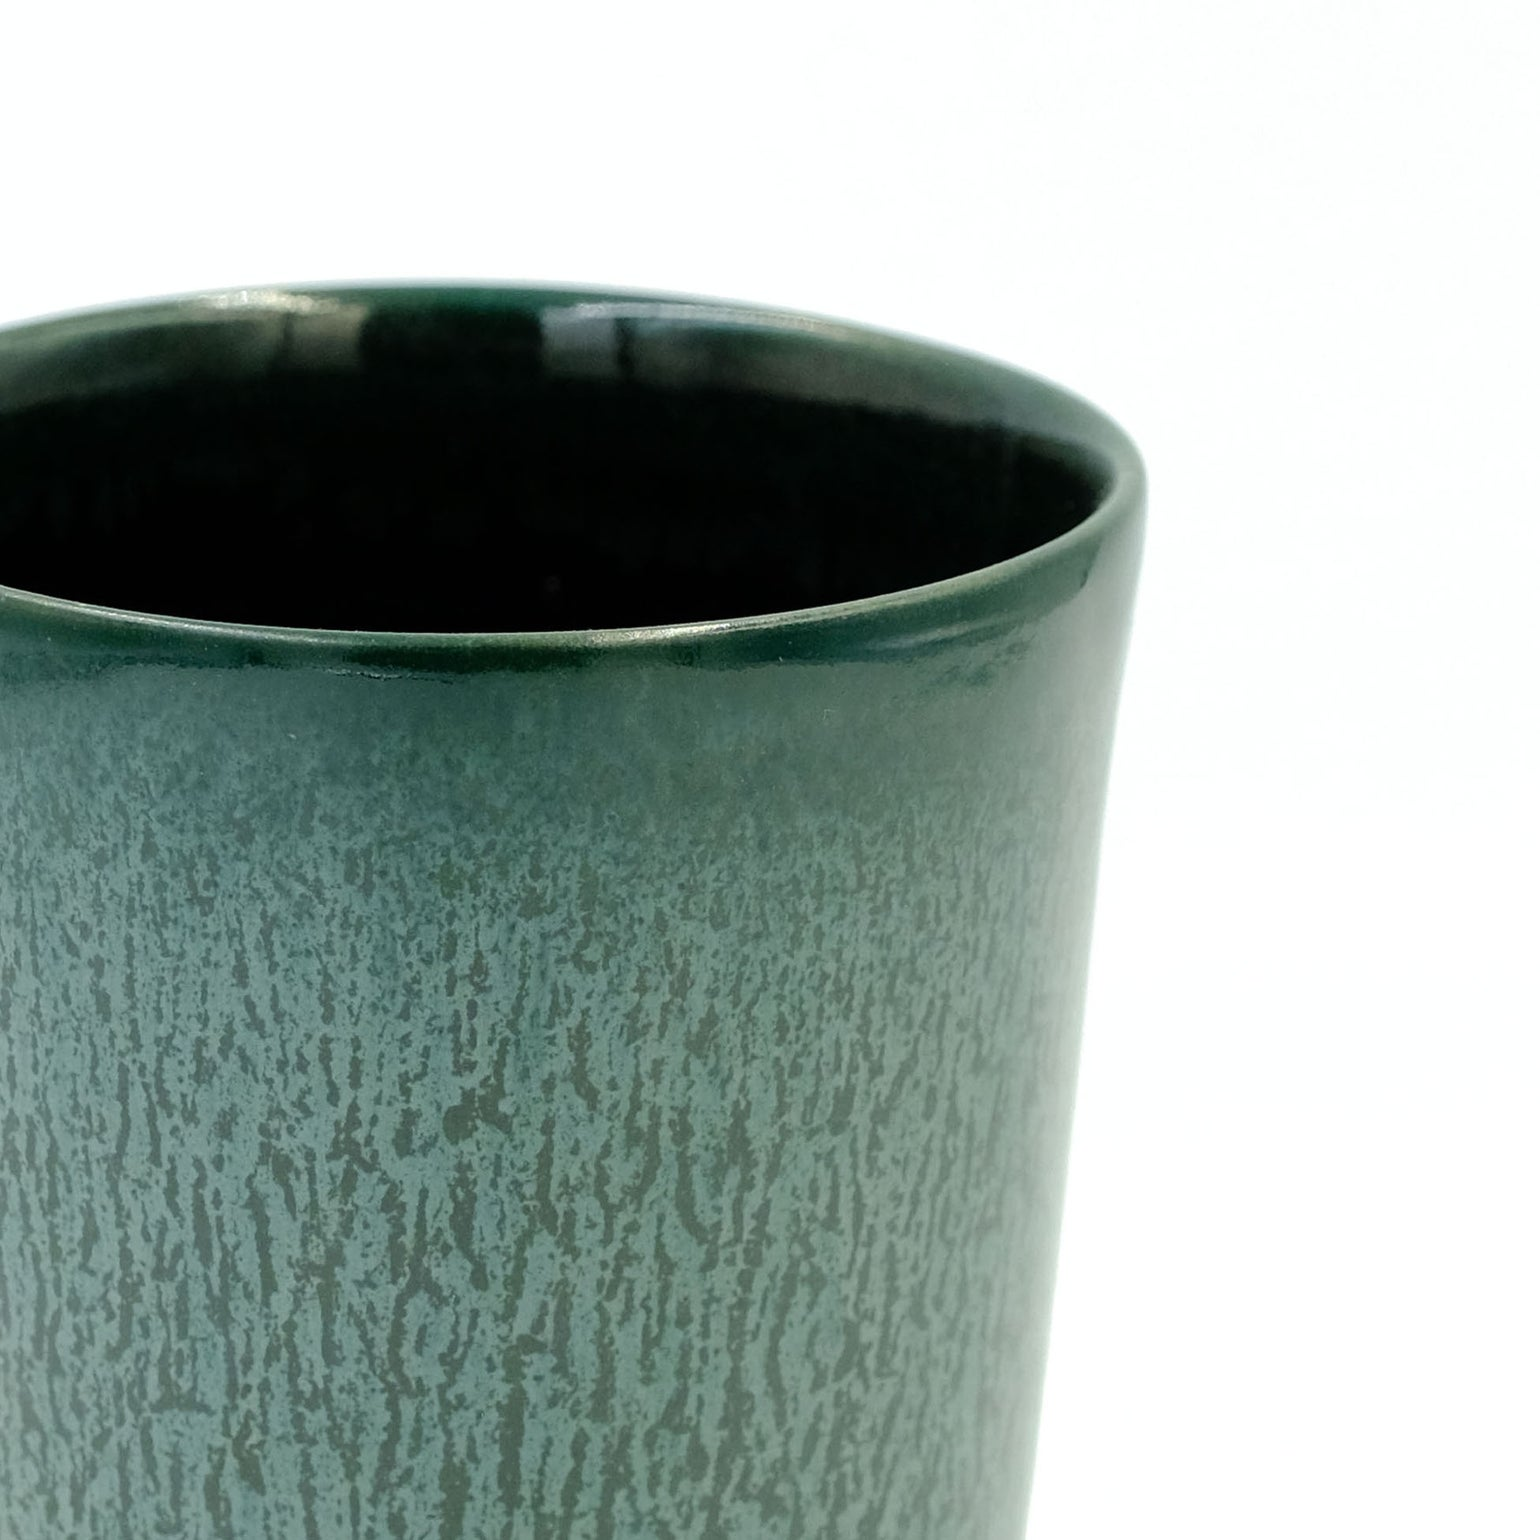 Image of UNIKA CUP GREEN SIVER